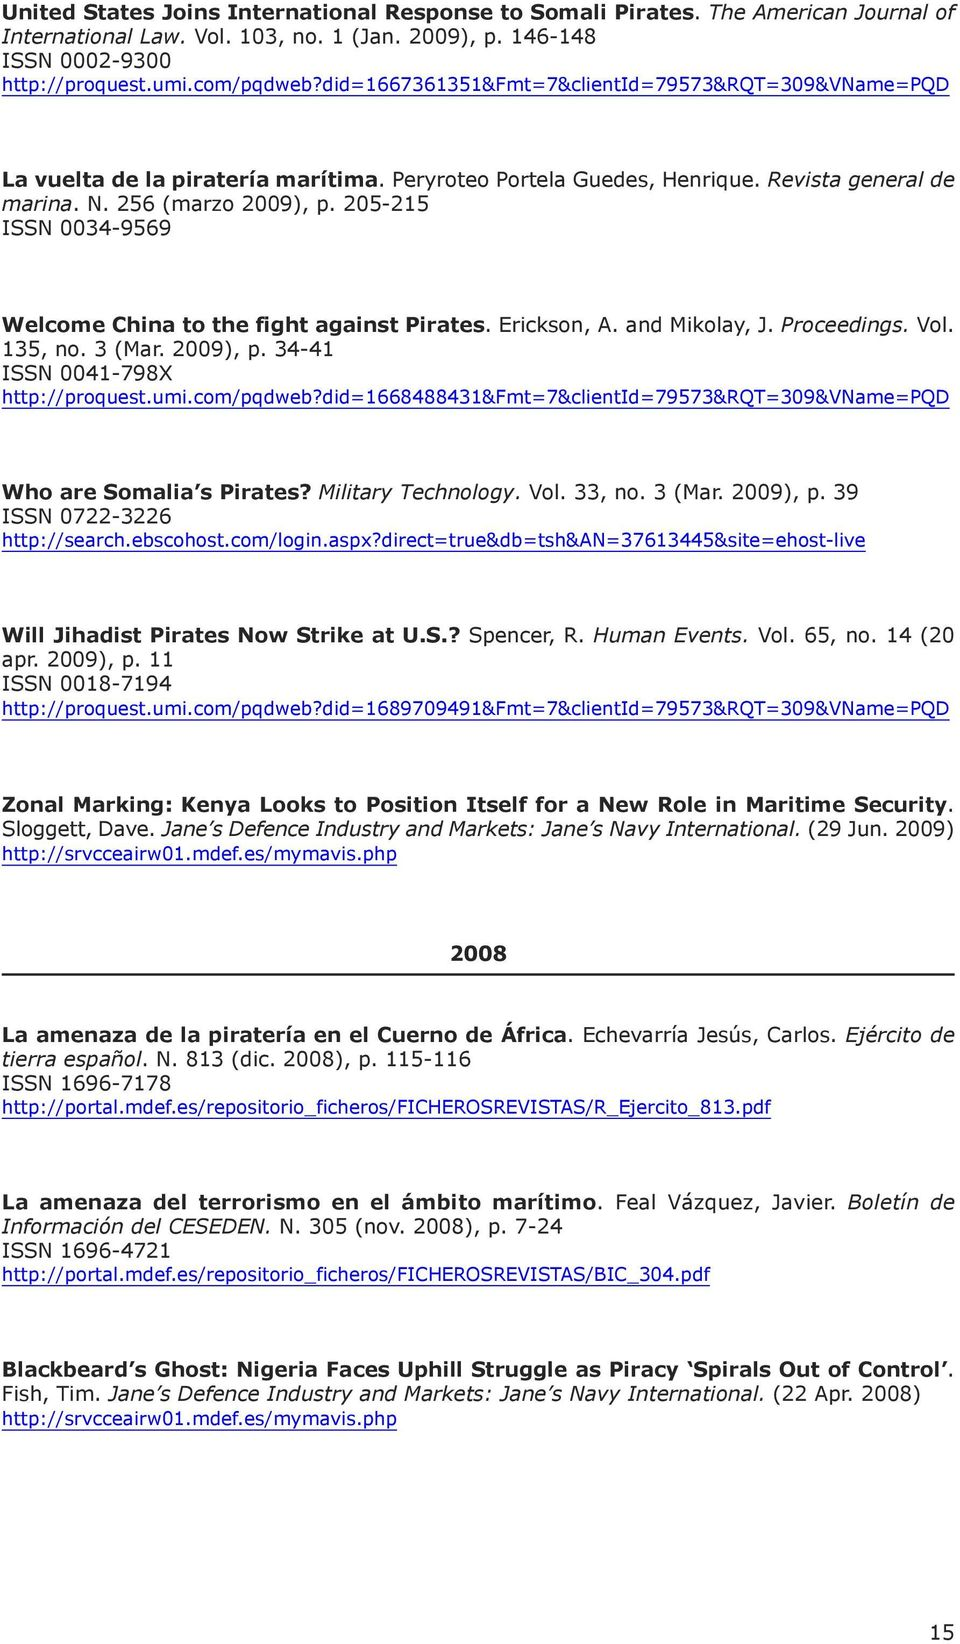 205-215 ISSn 0034-9569 Welcome china to the fight against pirates. Erickson, A. and mikolay, J. Proceedings. Vol. 135, no. 3 (mar. 2009), p. 34-41 ISSn 0041-798X http://proquest.umi.com/pqdweb?